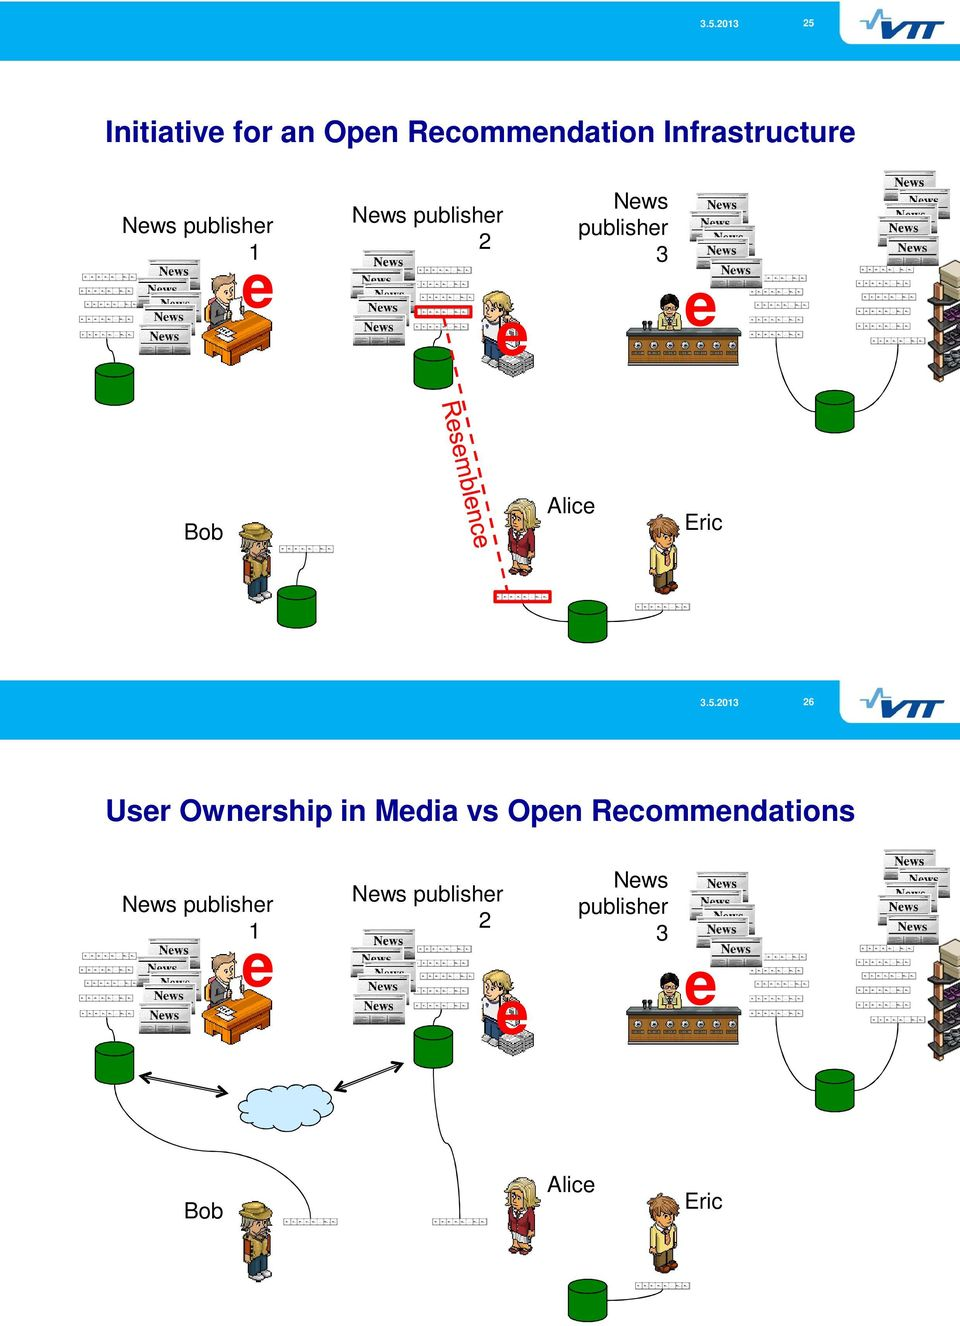 Eric 26 Usr Ownrship in Mdia vs Opn Rcommndations